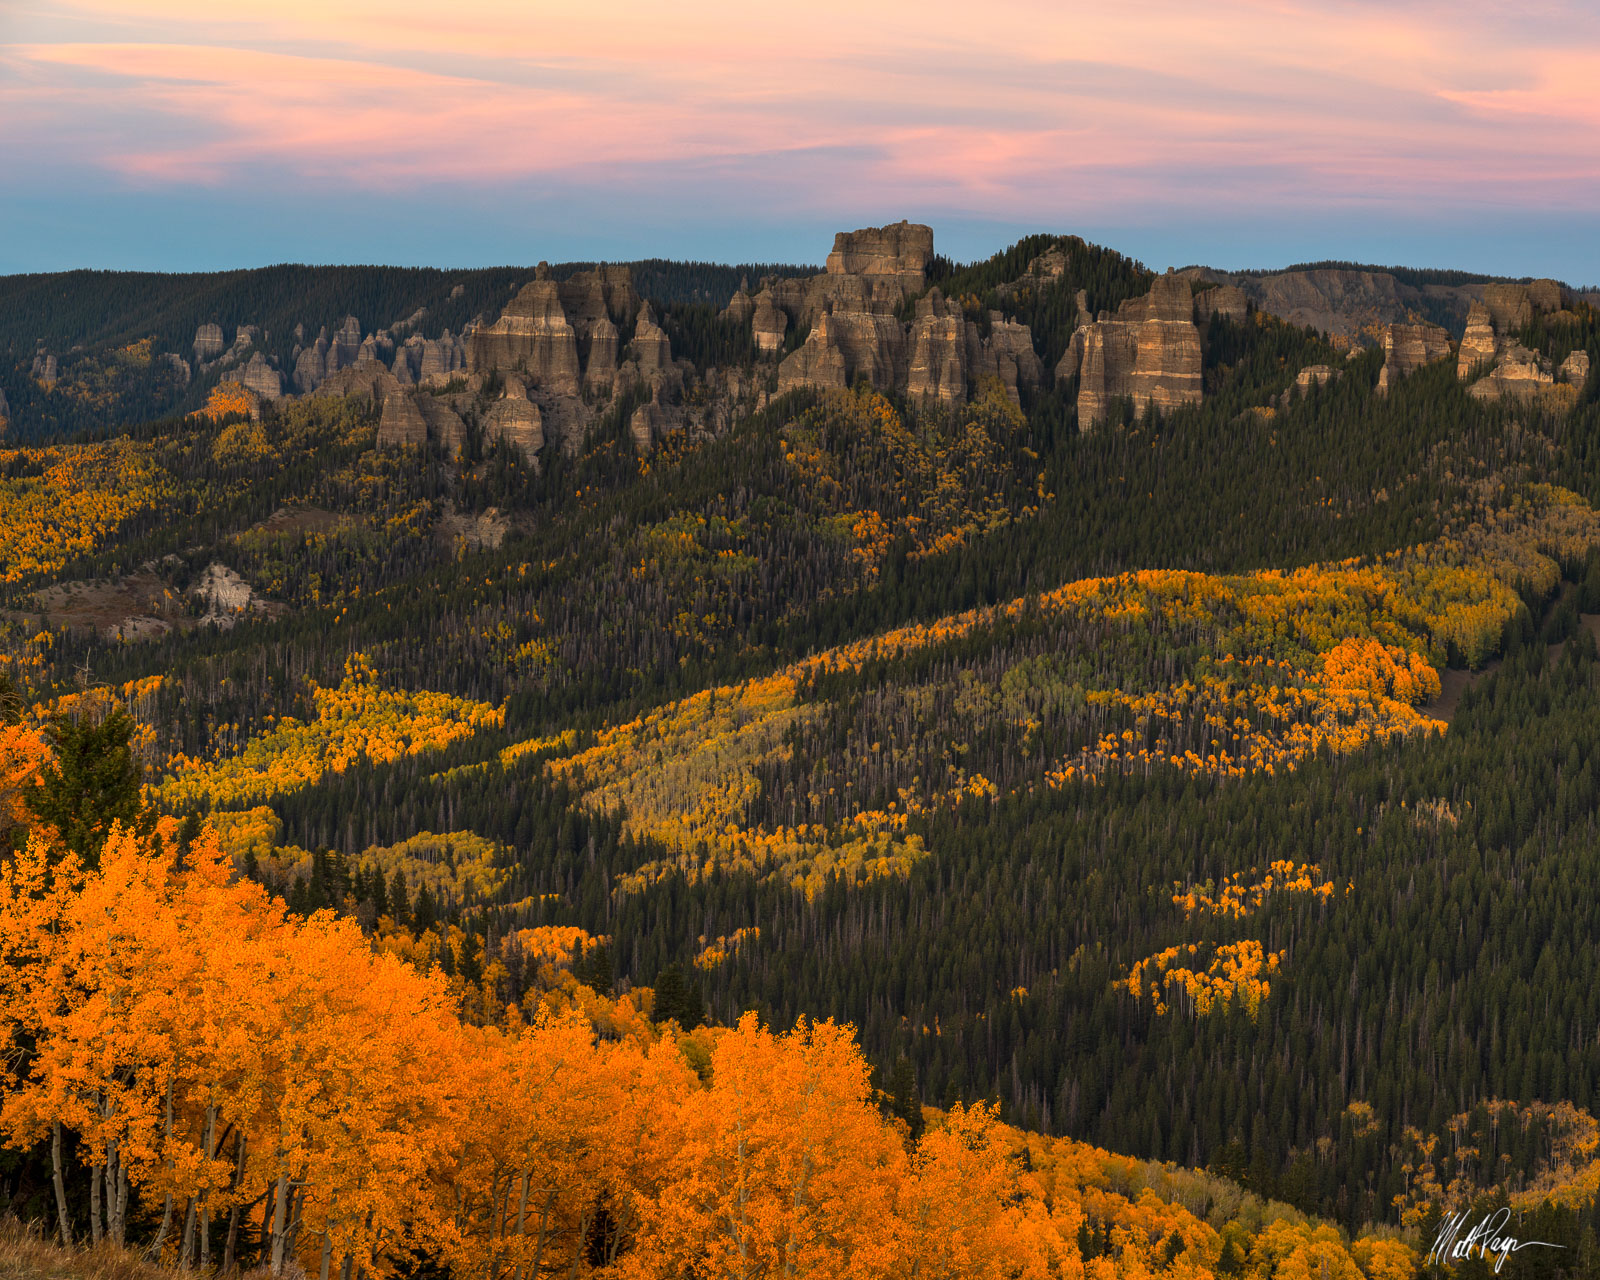 Late evening wispy clouds provided a nice splash of color in this scene near Ridgway, Colorado on a crisp fall evening. The autumn...